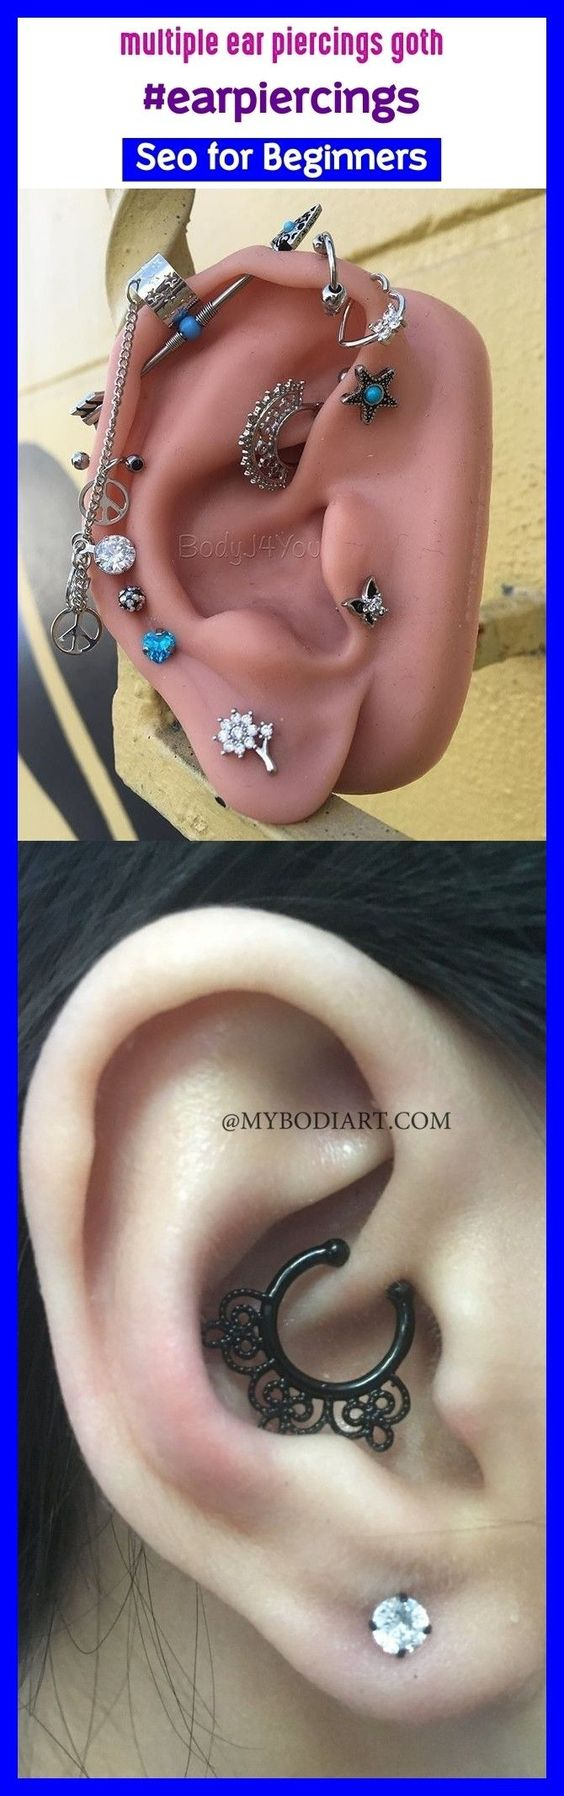 Details about  /Crystal Bar Barbell Ear Cartilage Tragus Helix Studs Piercing Earrings Jewellery